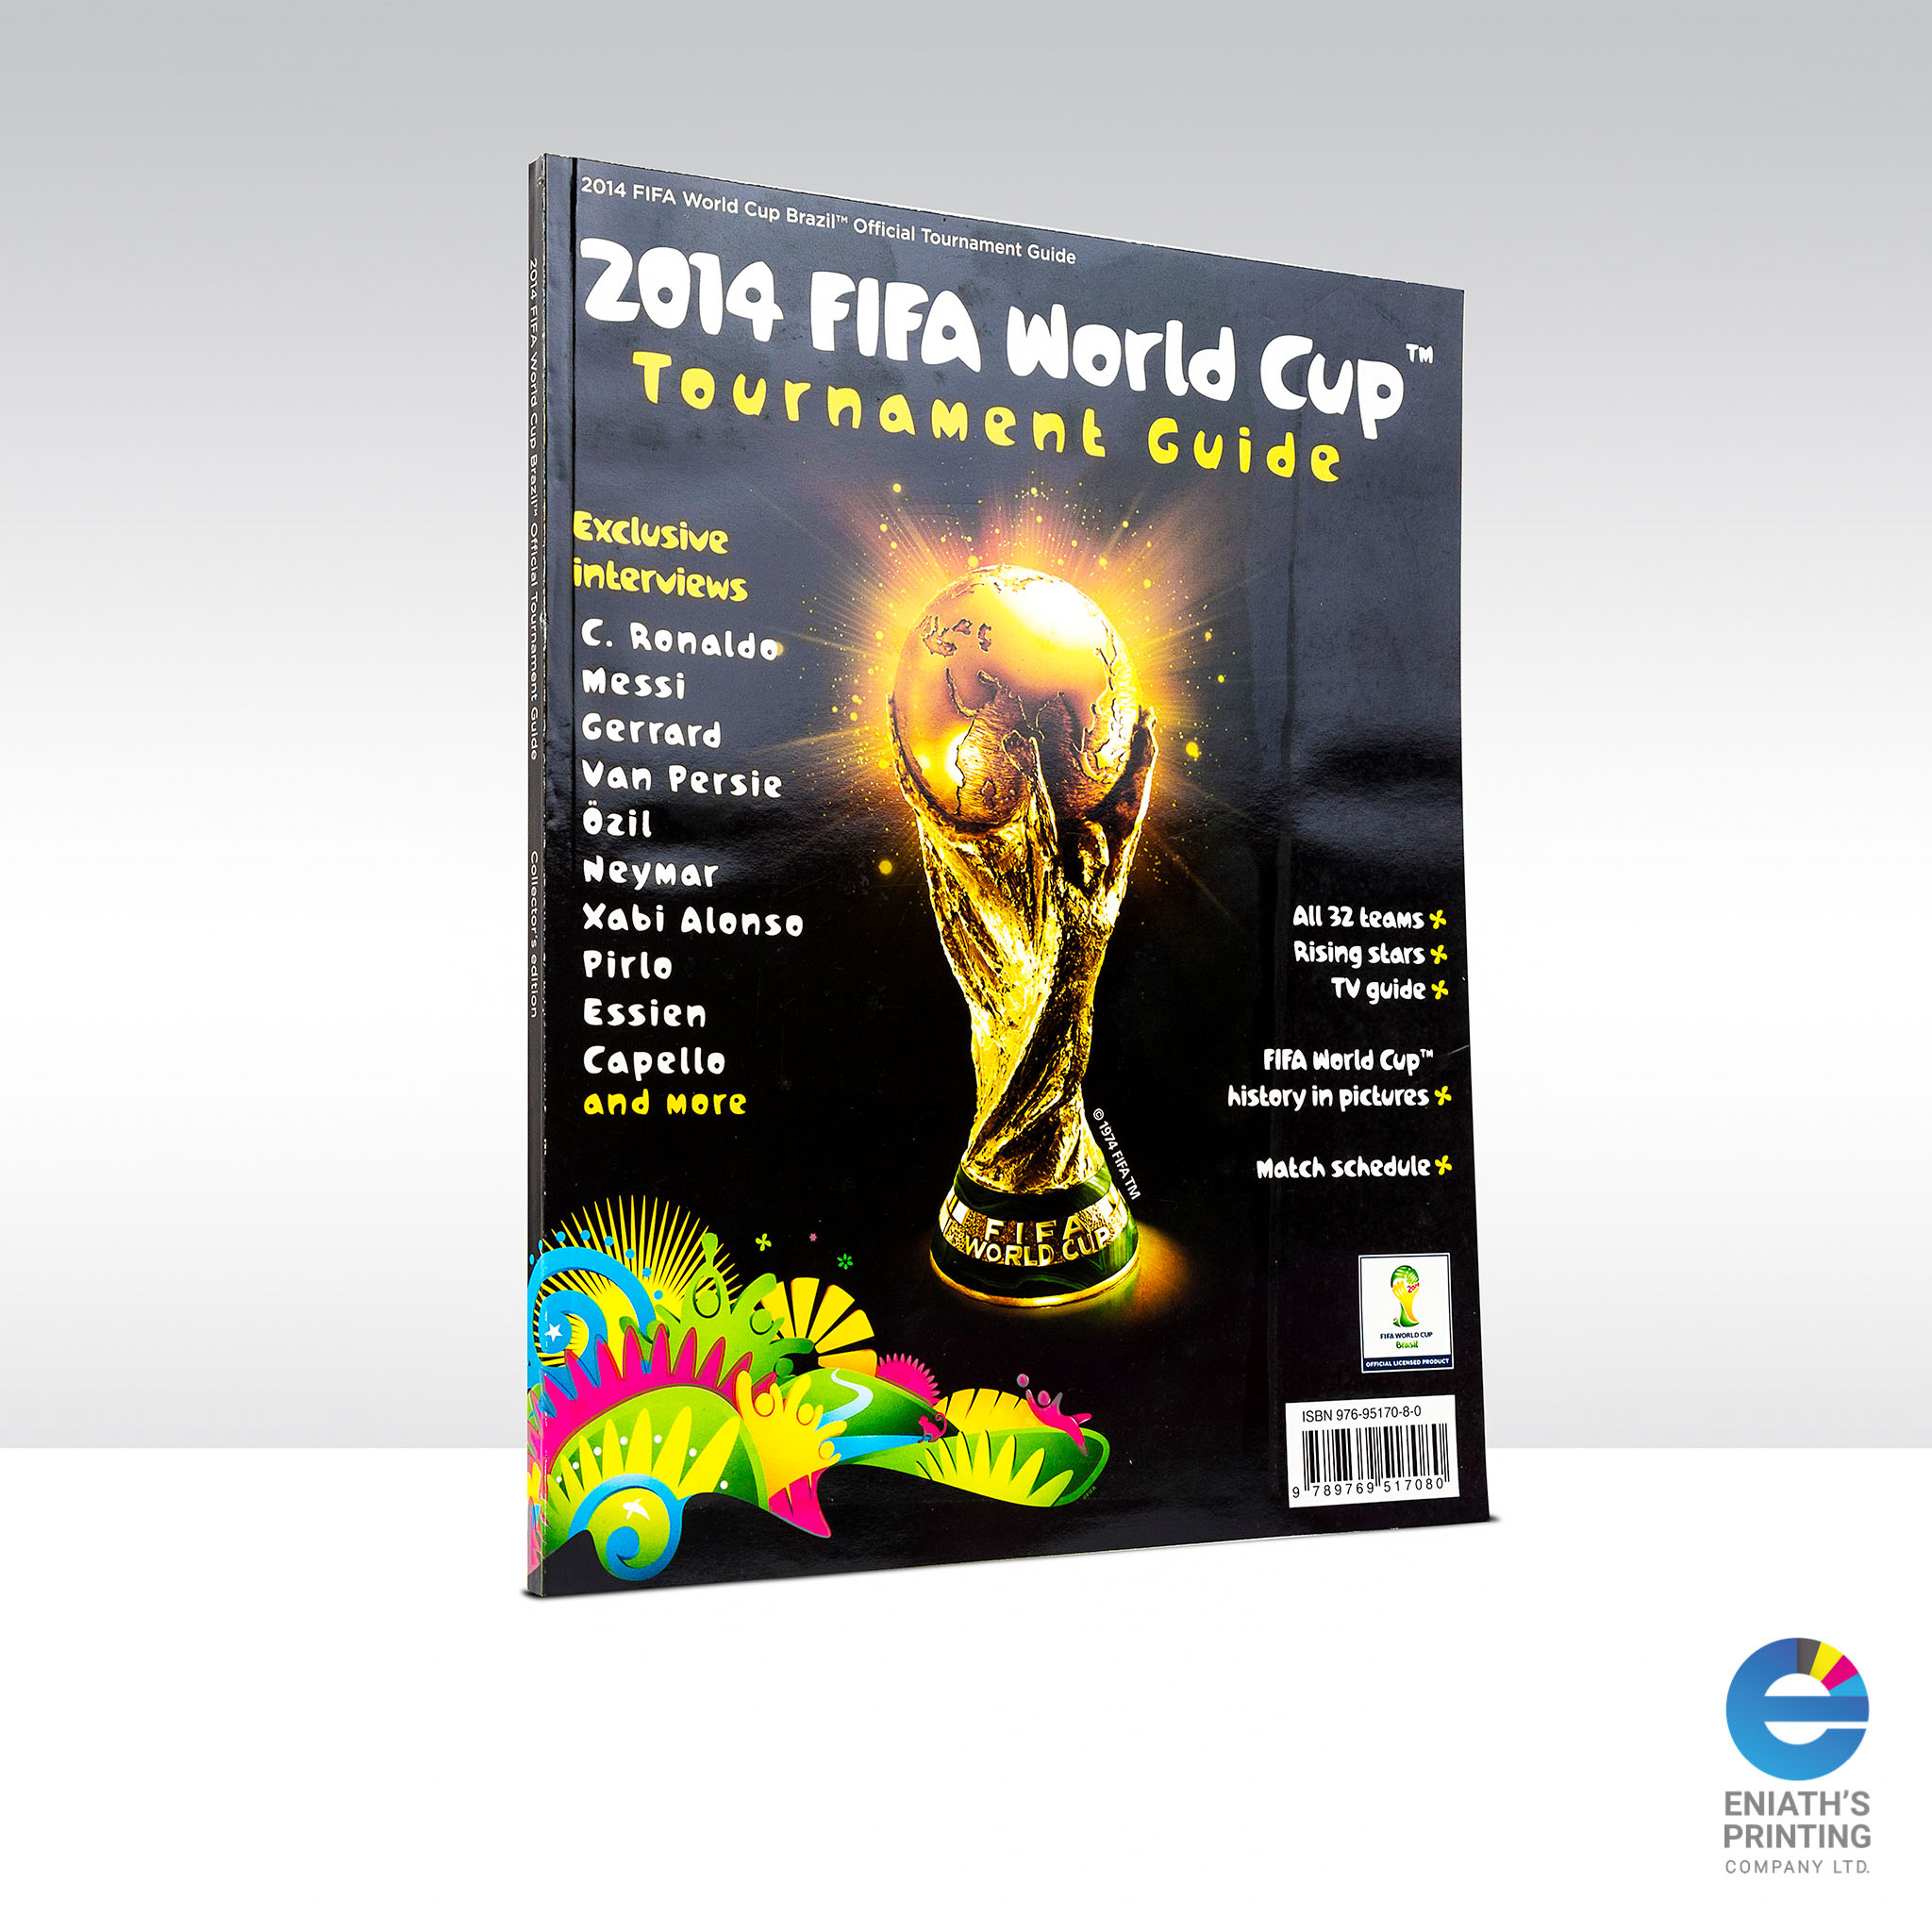 2014 FIFA World cup Tournament Guide - Printed by Eniath's Printing Co. Ltd.